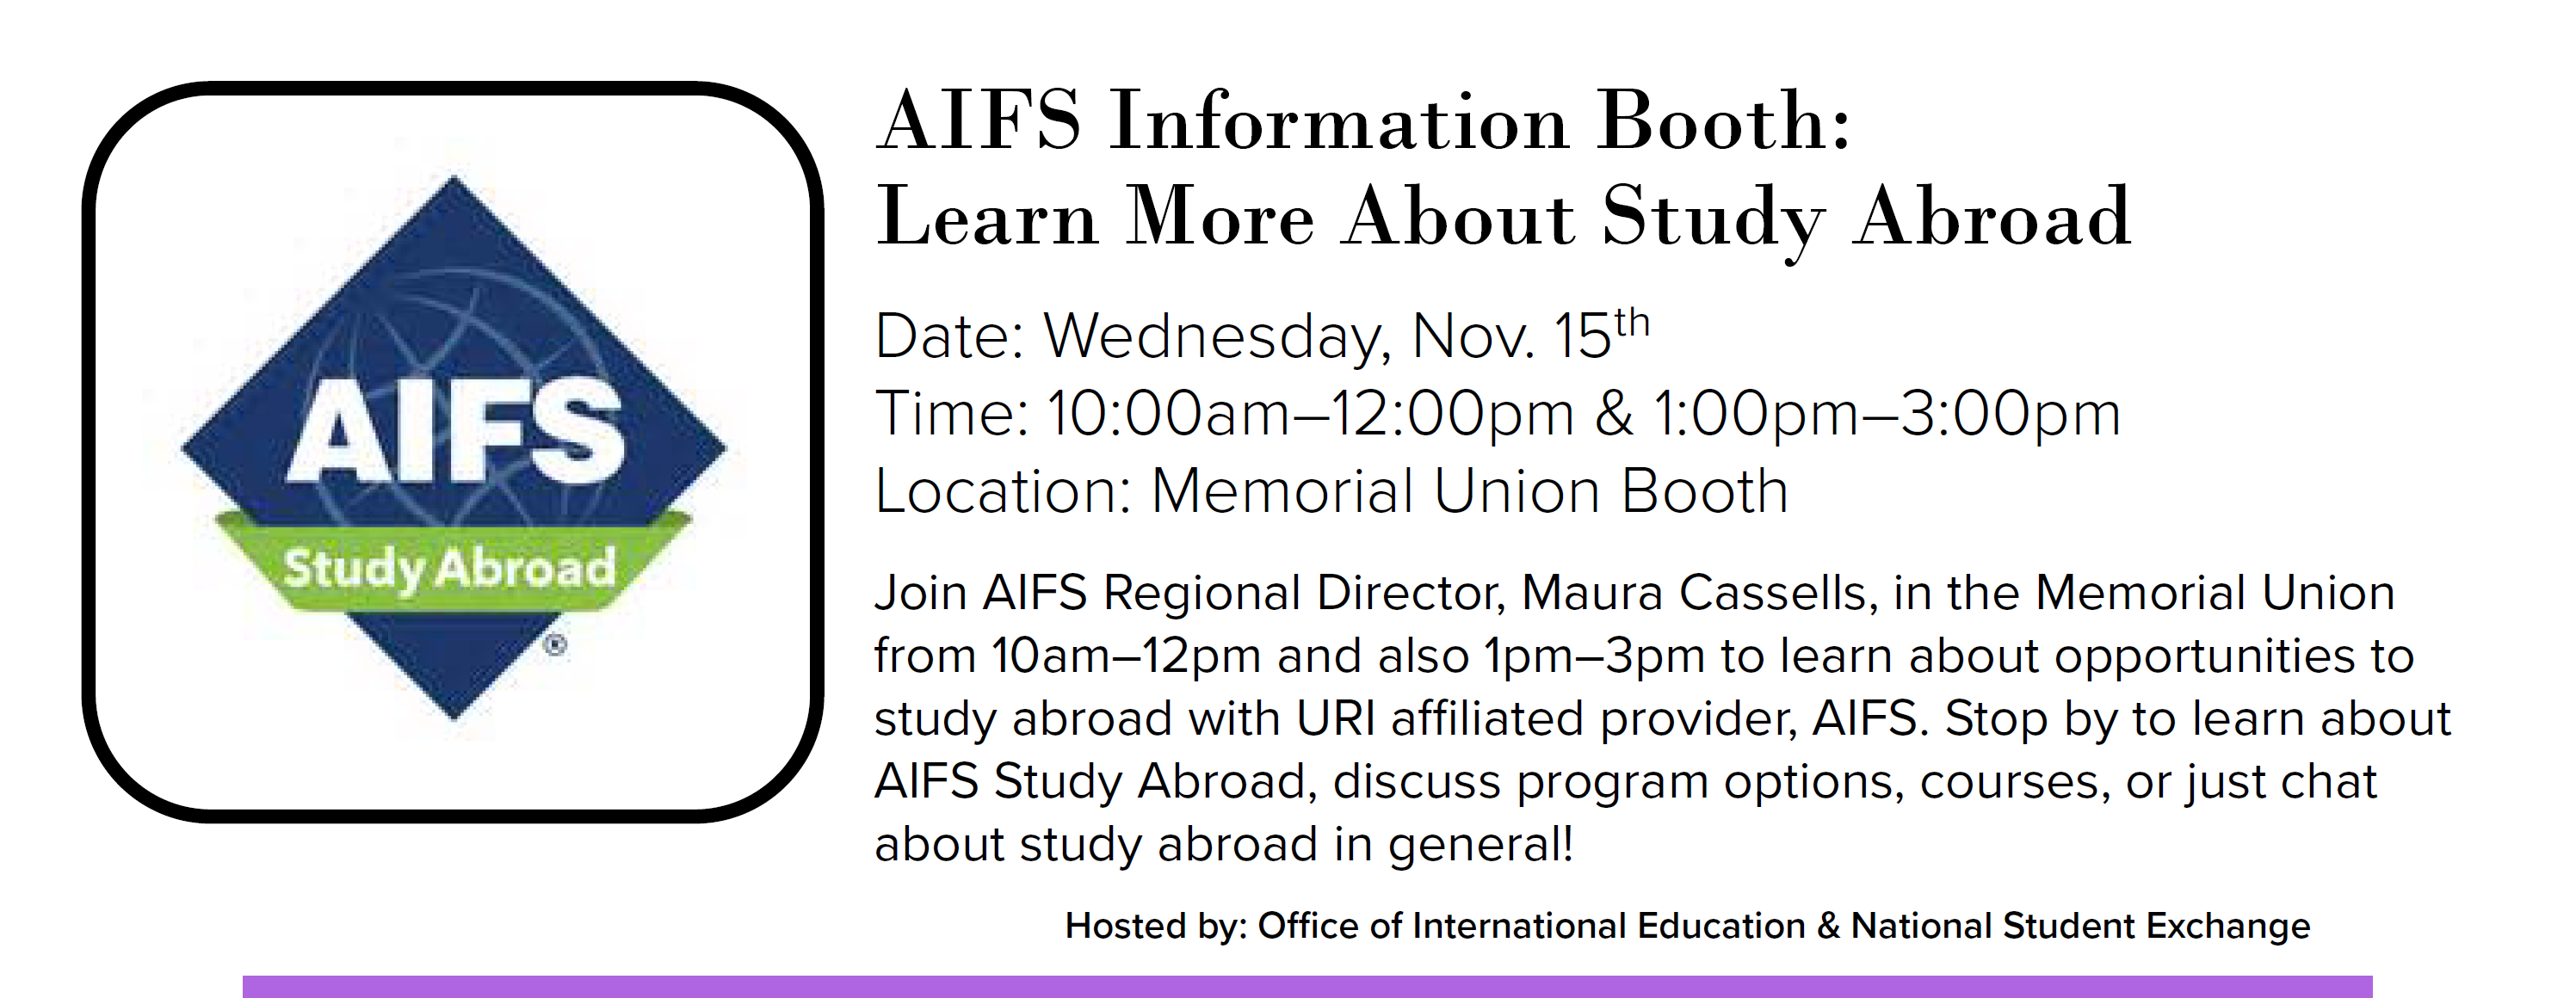 AIFS Info Booth Event